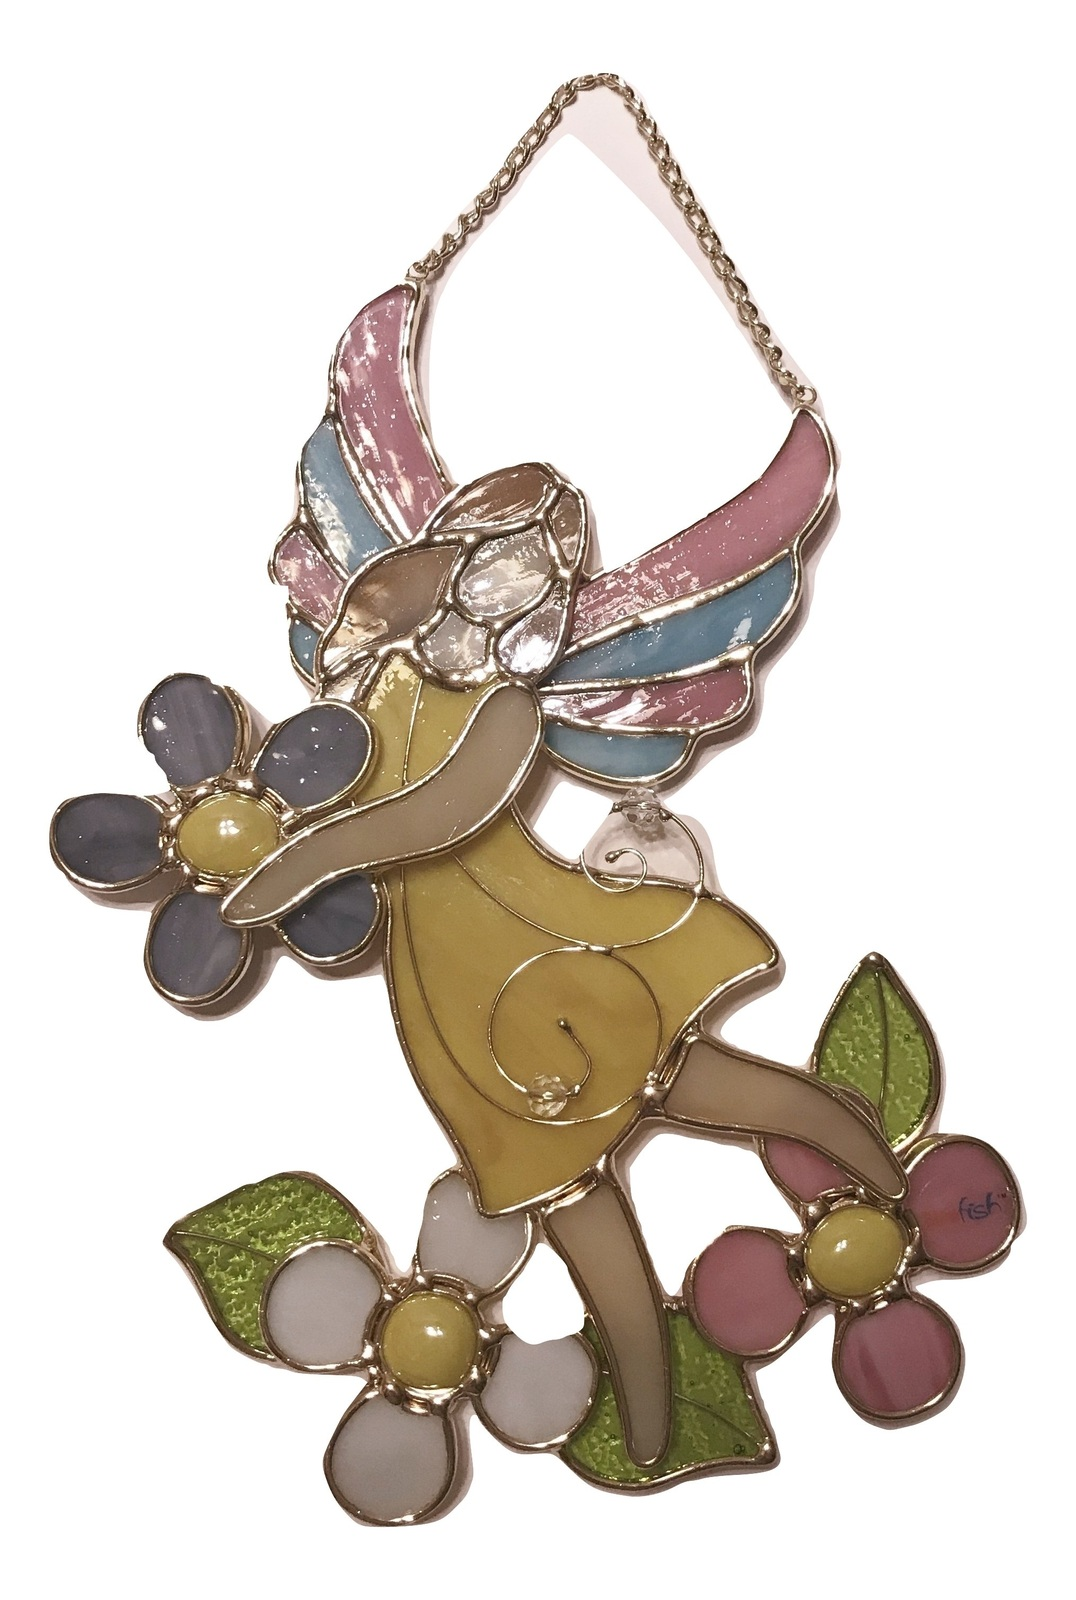 Blowfish Stain Glass Daisy Fairy Holding a Flower Wall Plaque Suncatcher